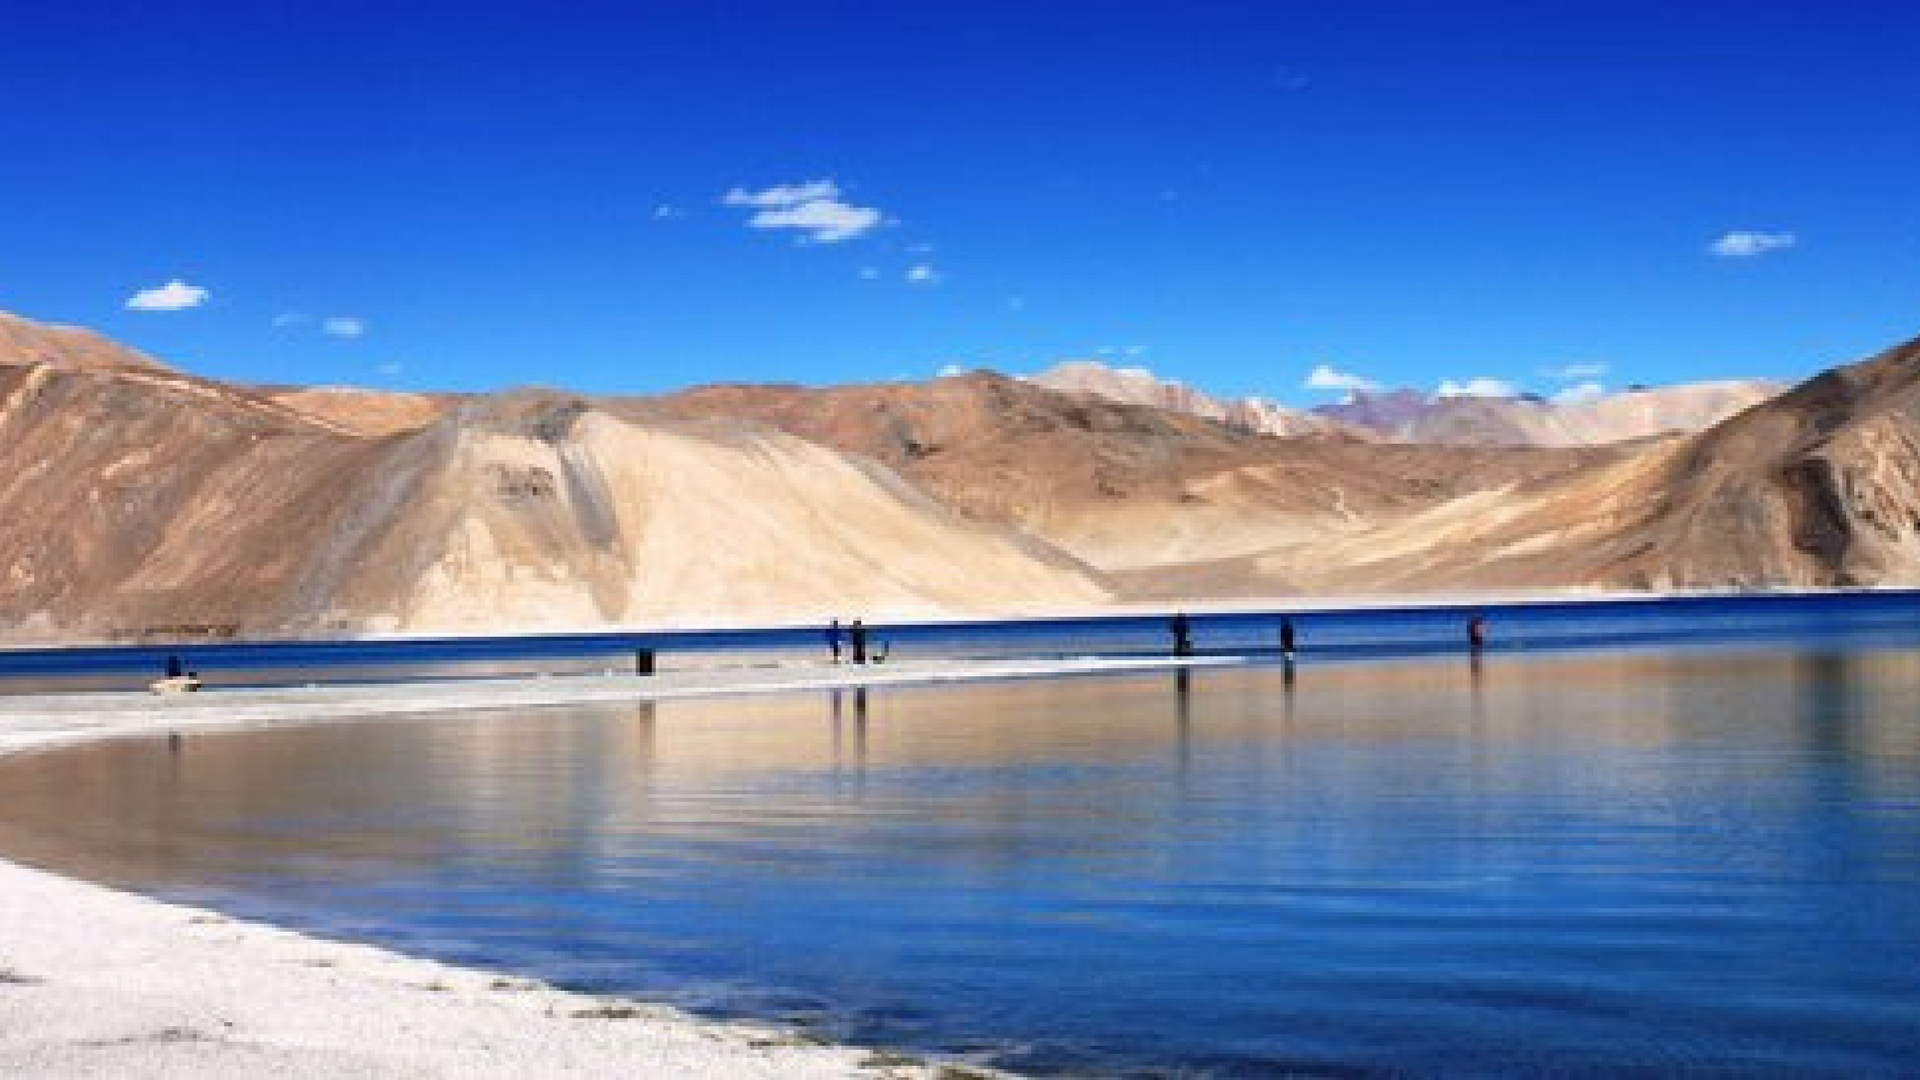 Journey from leh to Pangong Lake